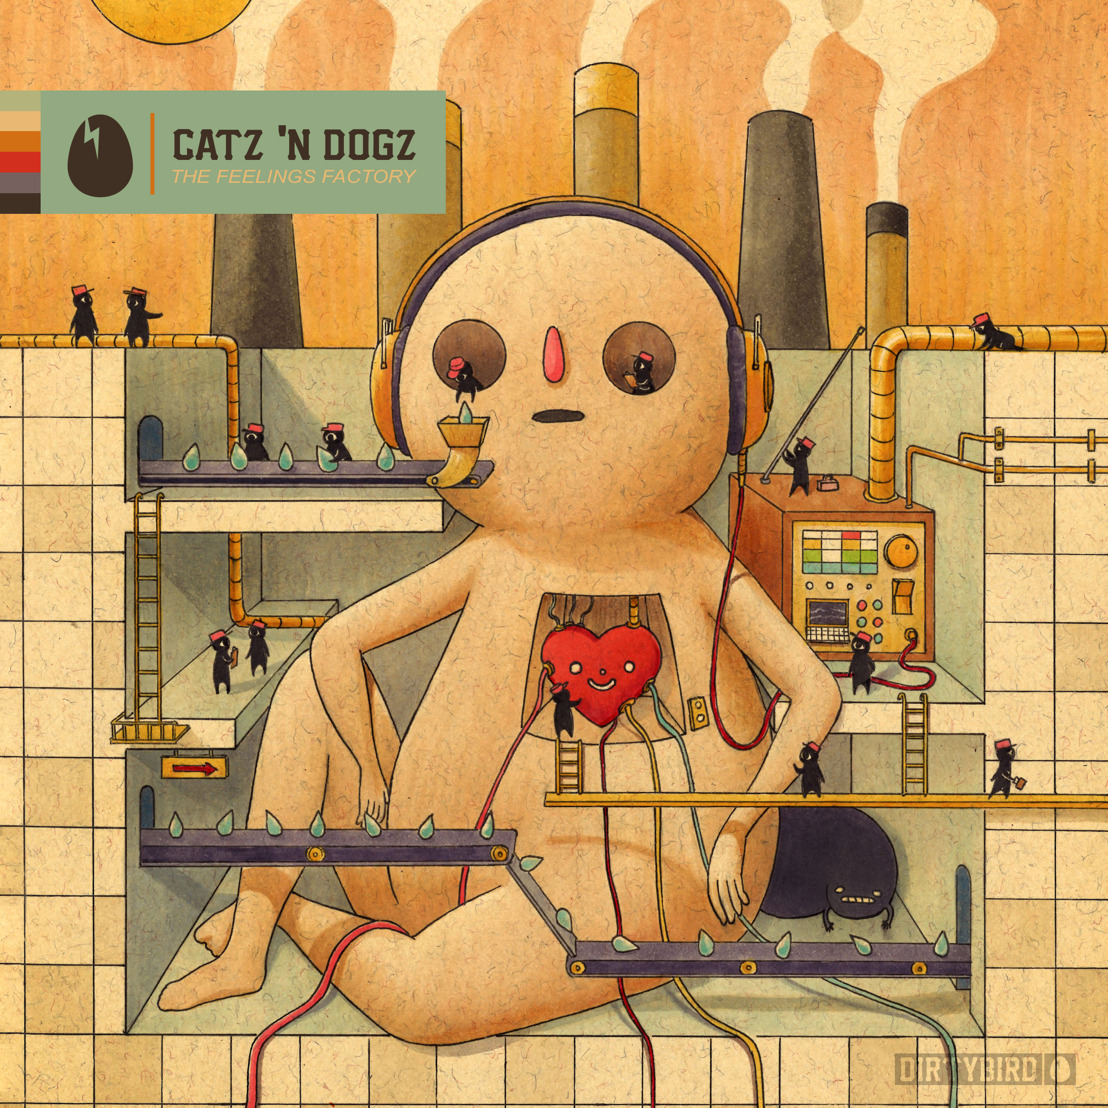 Catz 'N Dogz Come Back To Roost on DIRTYBIRD with The Feelings Factory EP